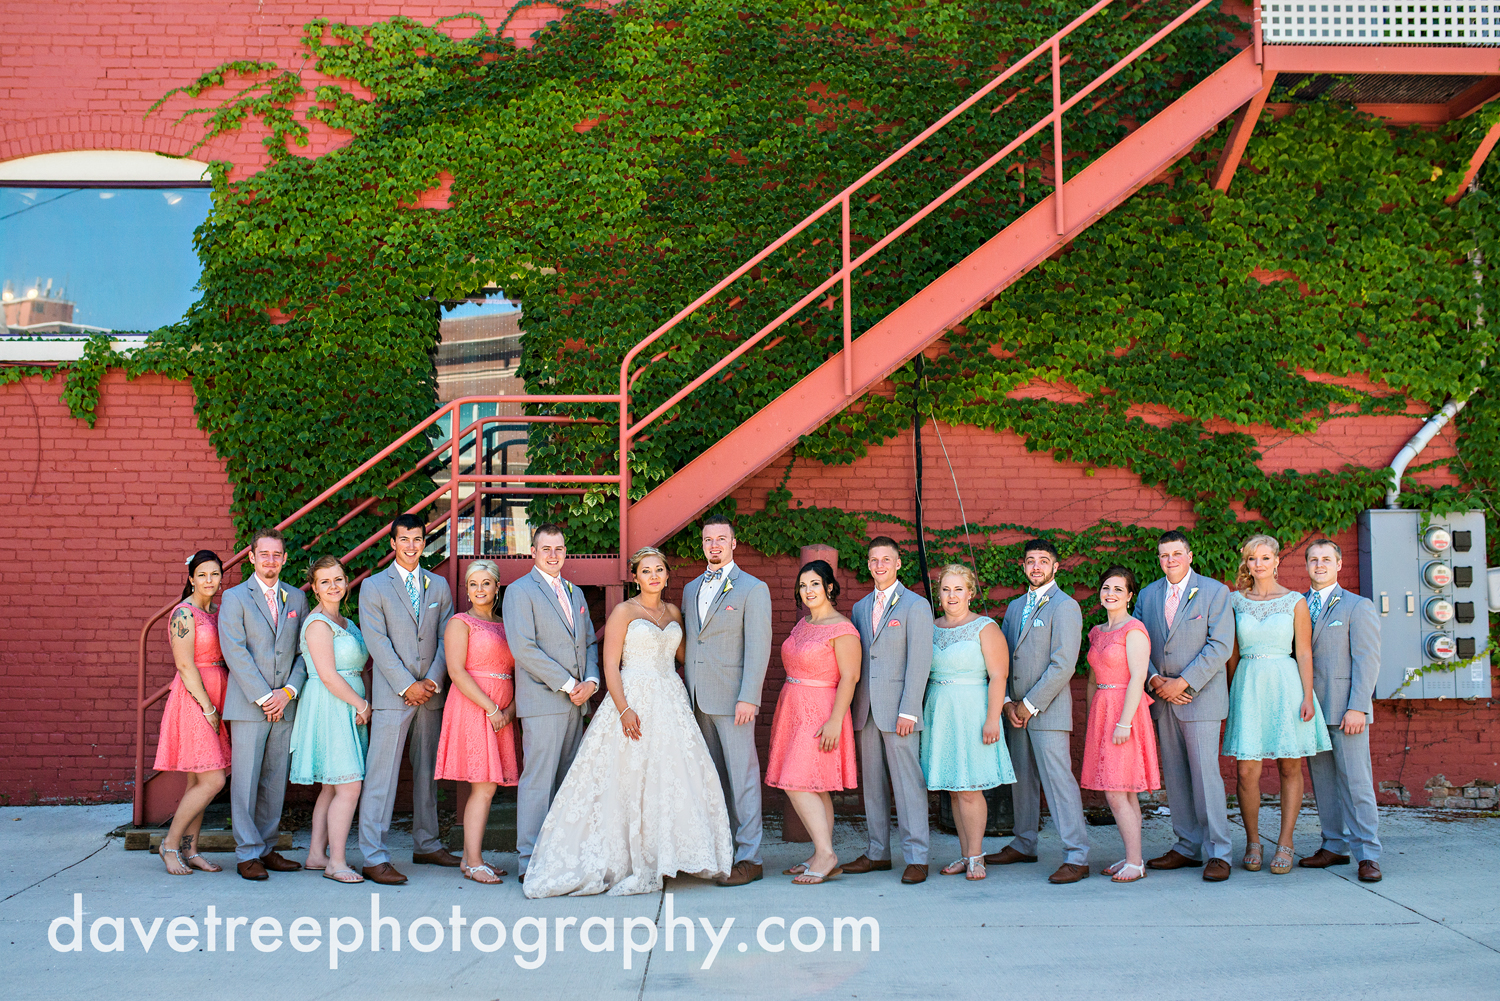 veranda_wedding_photographer_st_joseph_wedding_158.jpg